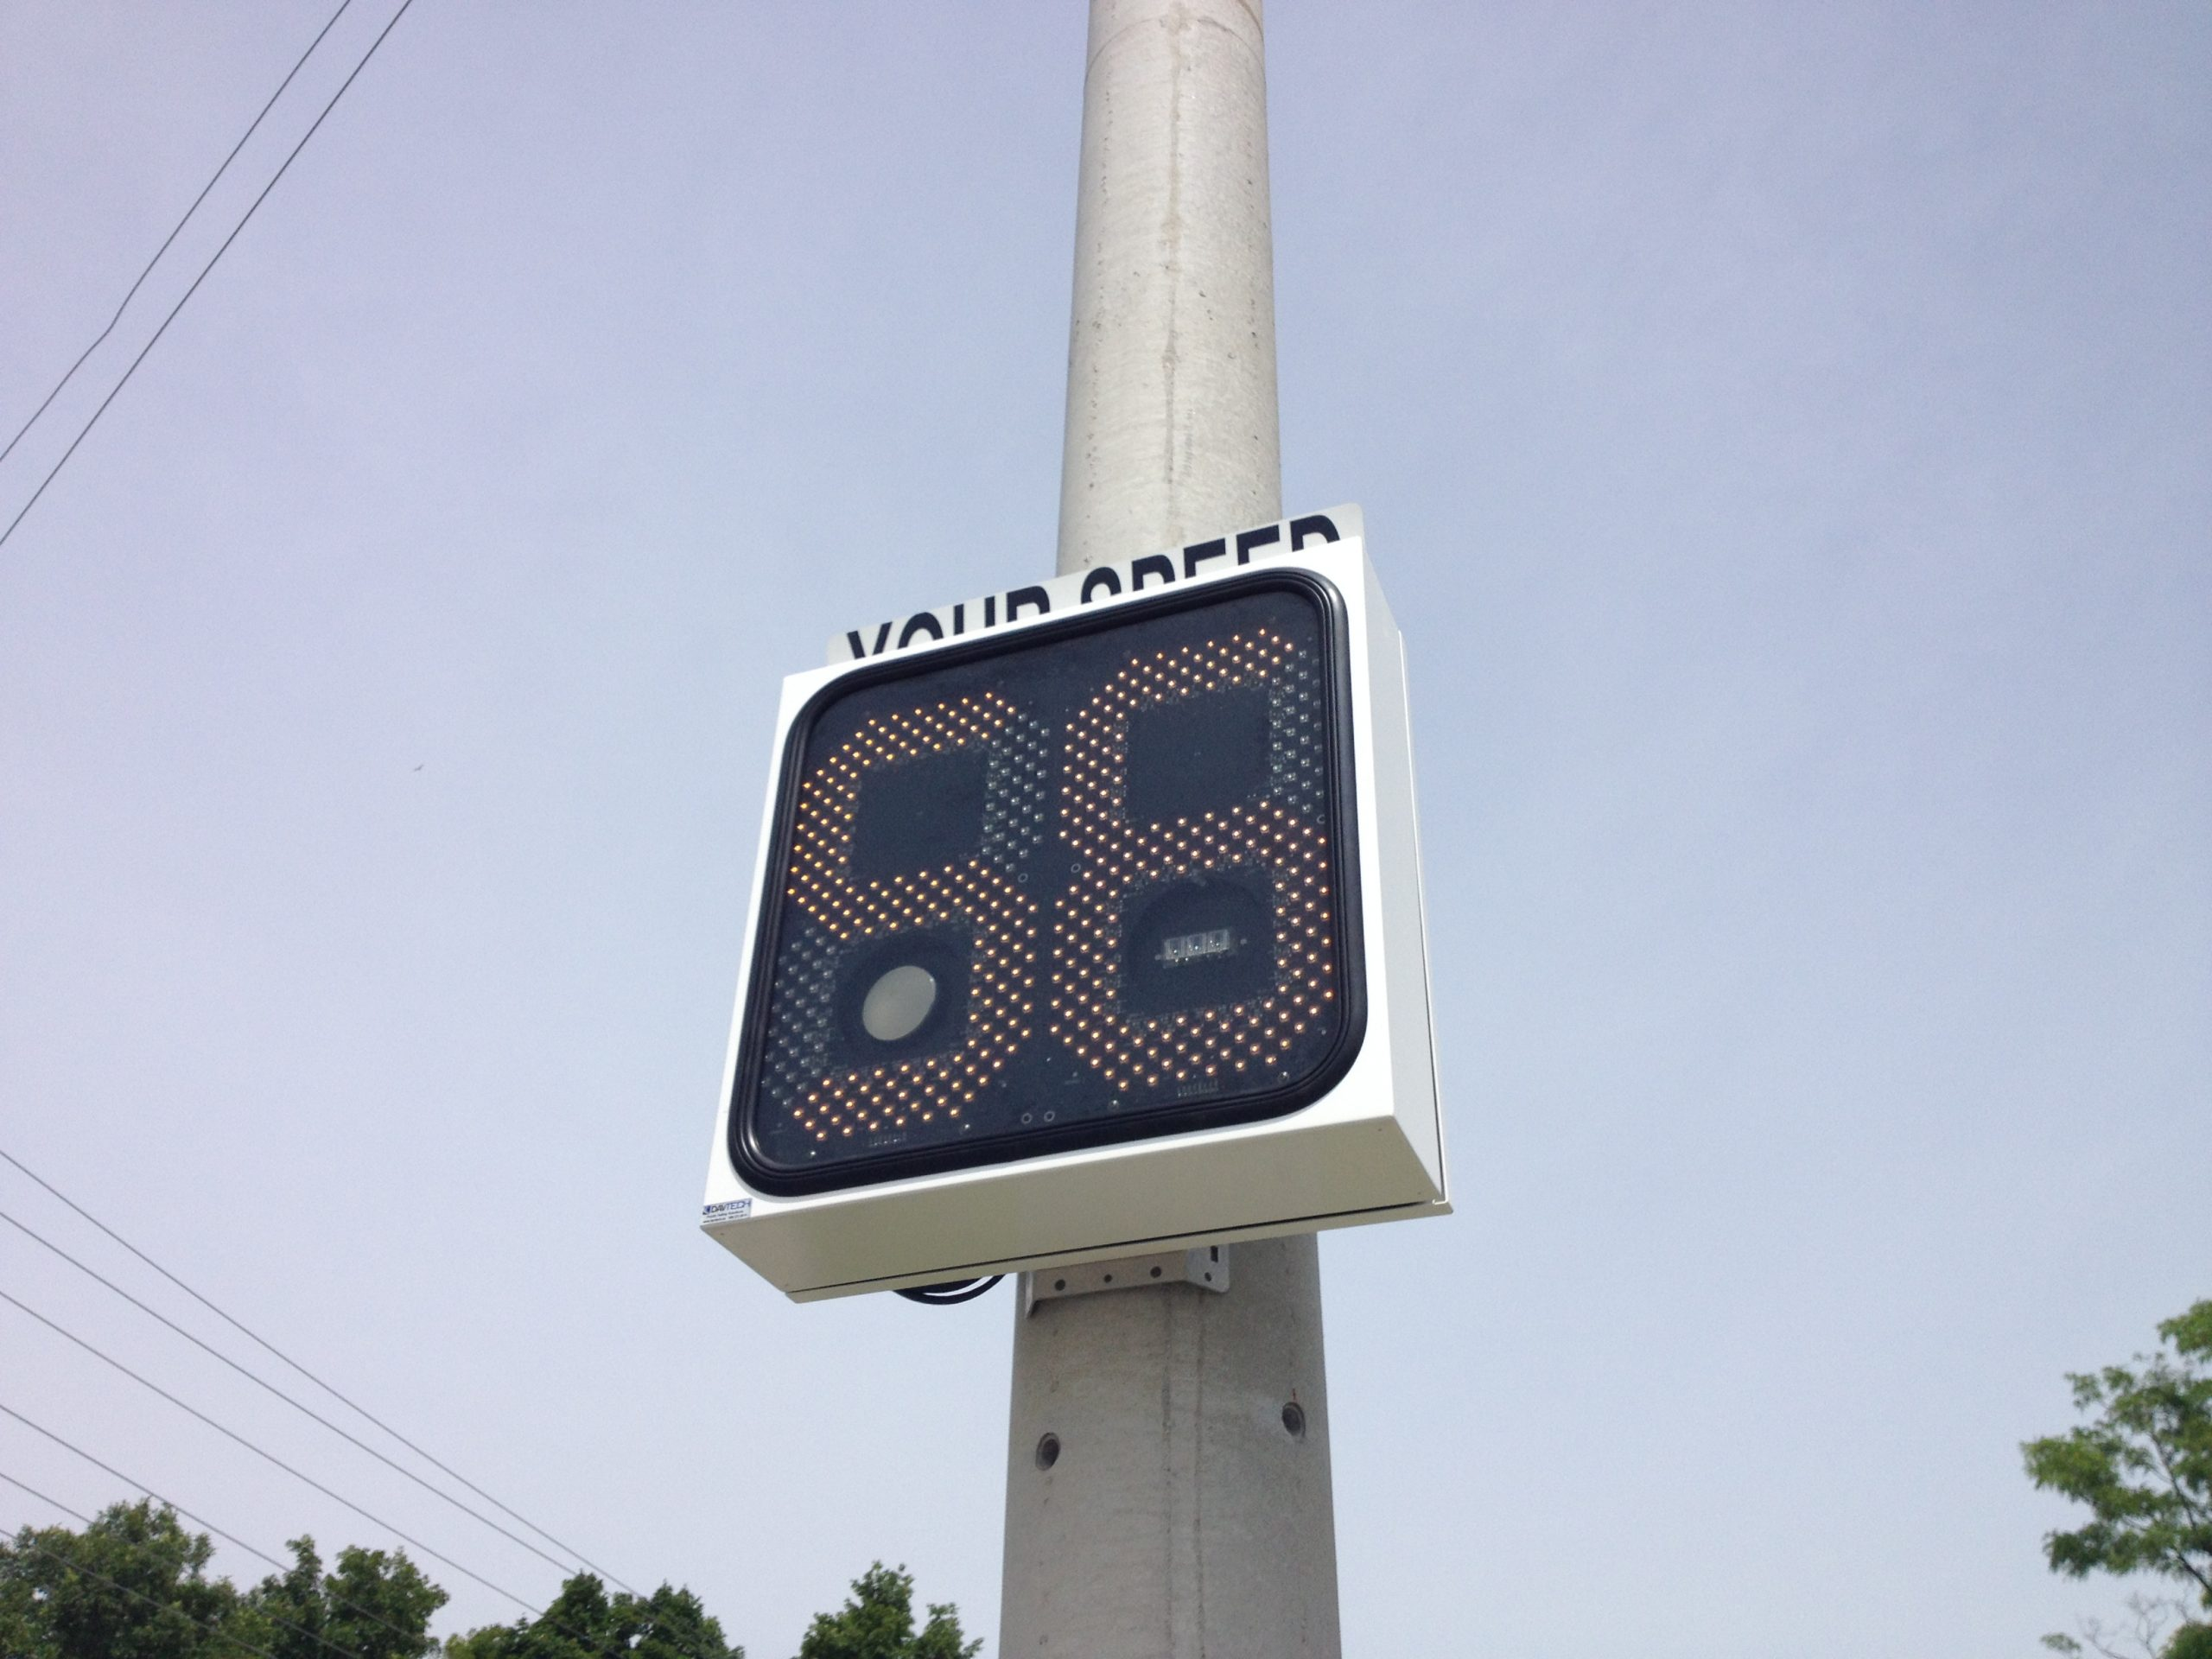 Digital signs used to remind drivers about PEC speed limit changes